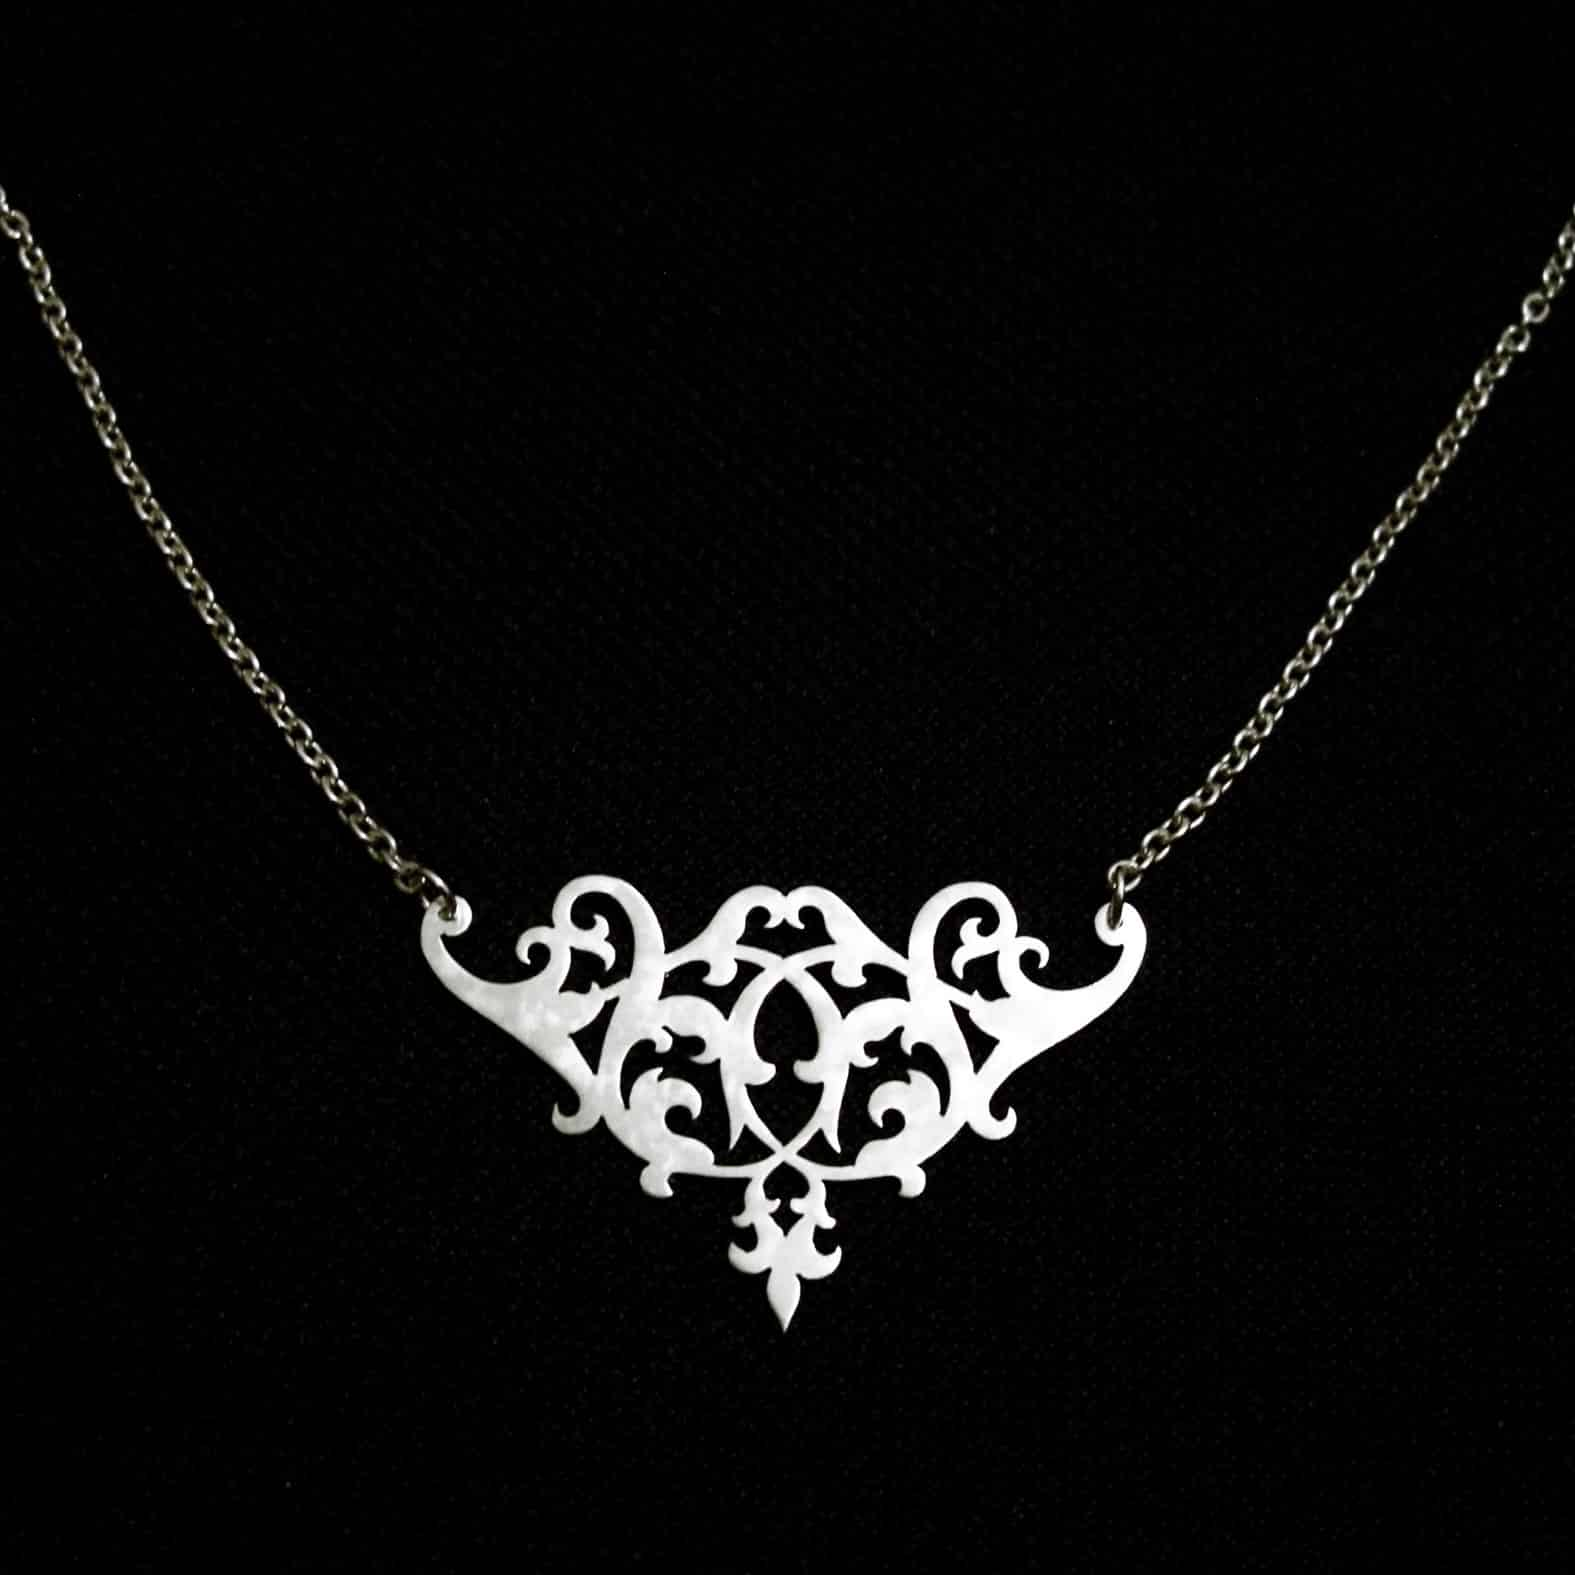 Renaissance Soiree – Small Silver Floral Necklace By Skadi Jewellery Design